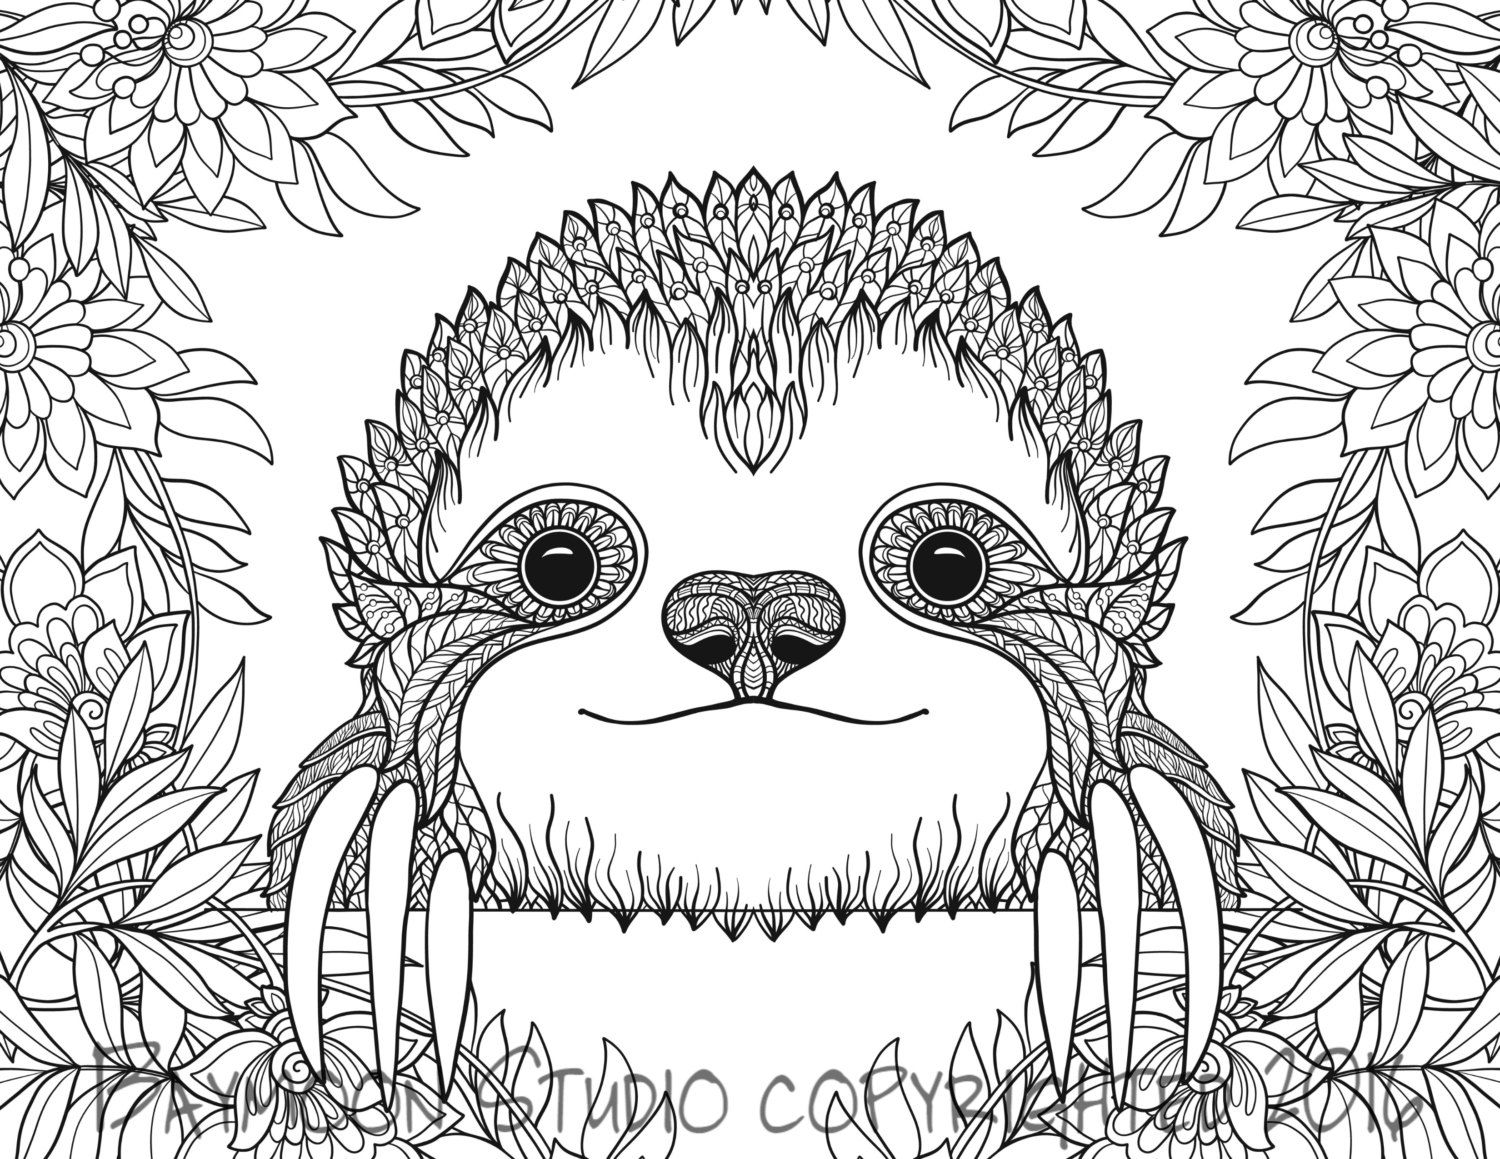 Pagina Para Colorear De Bebe Perezoso Perezoso Por Baymoonstudio Cute Coloring Pages Animal Coloring Pages Coloring Pages